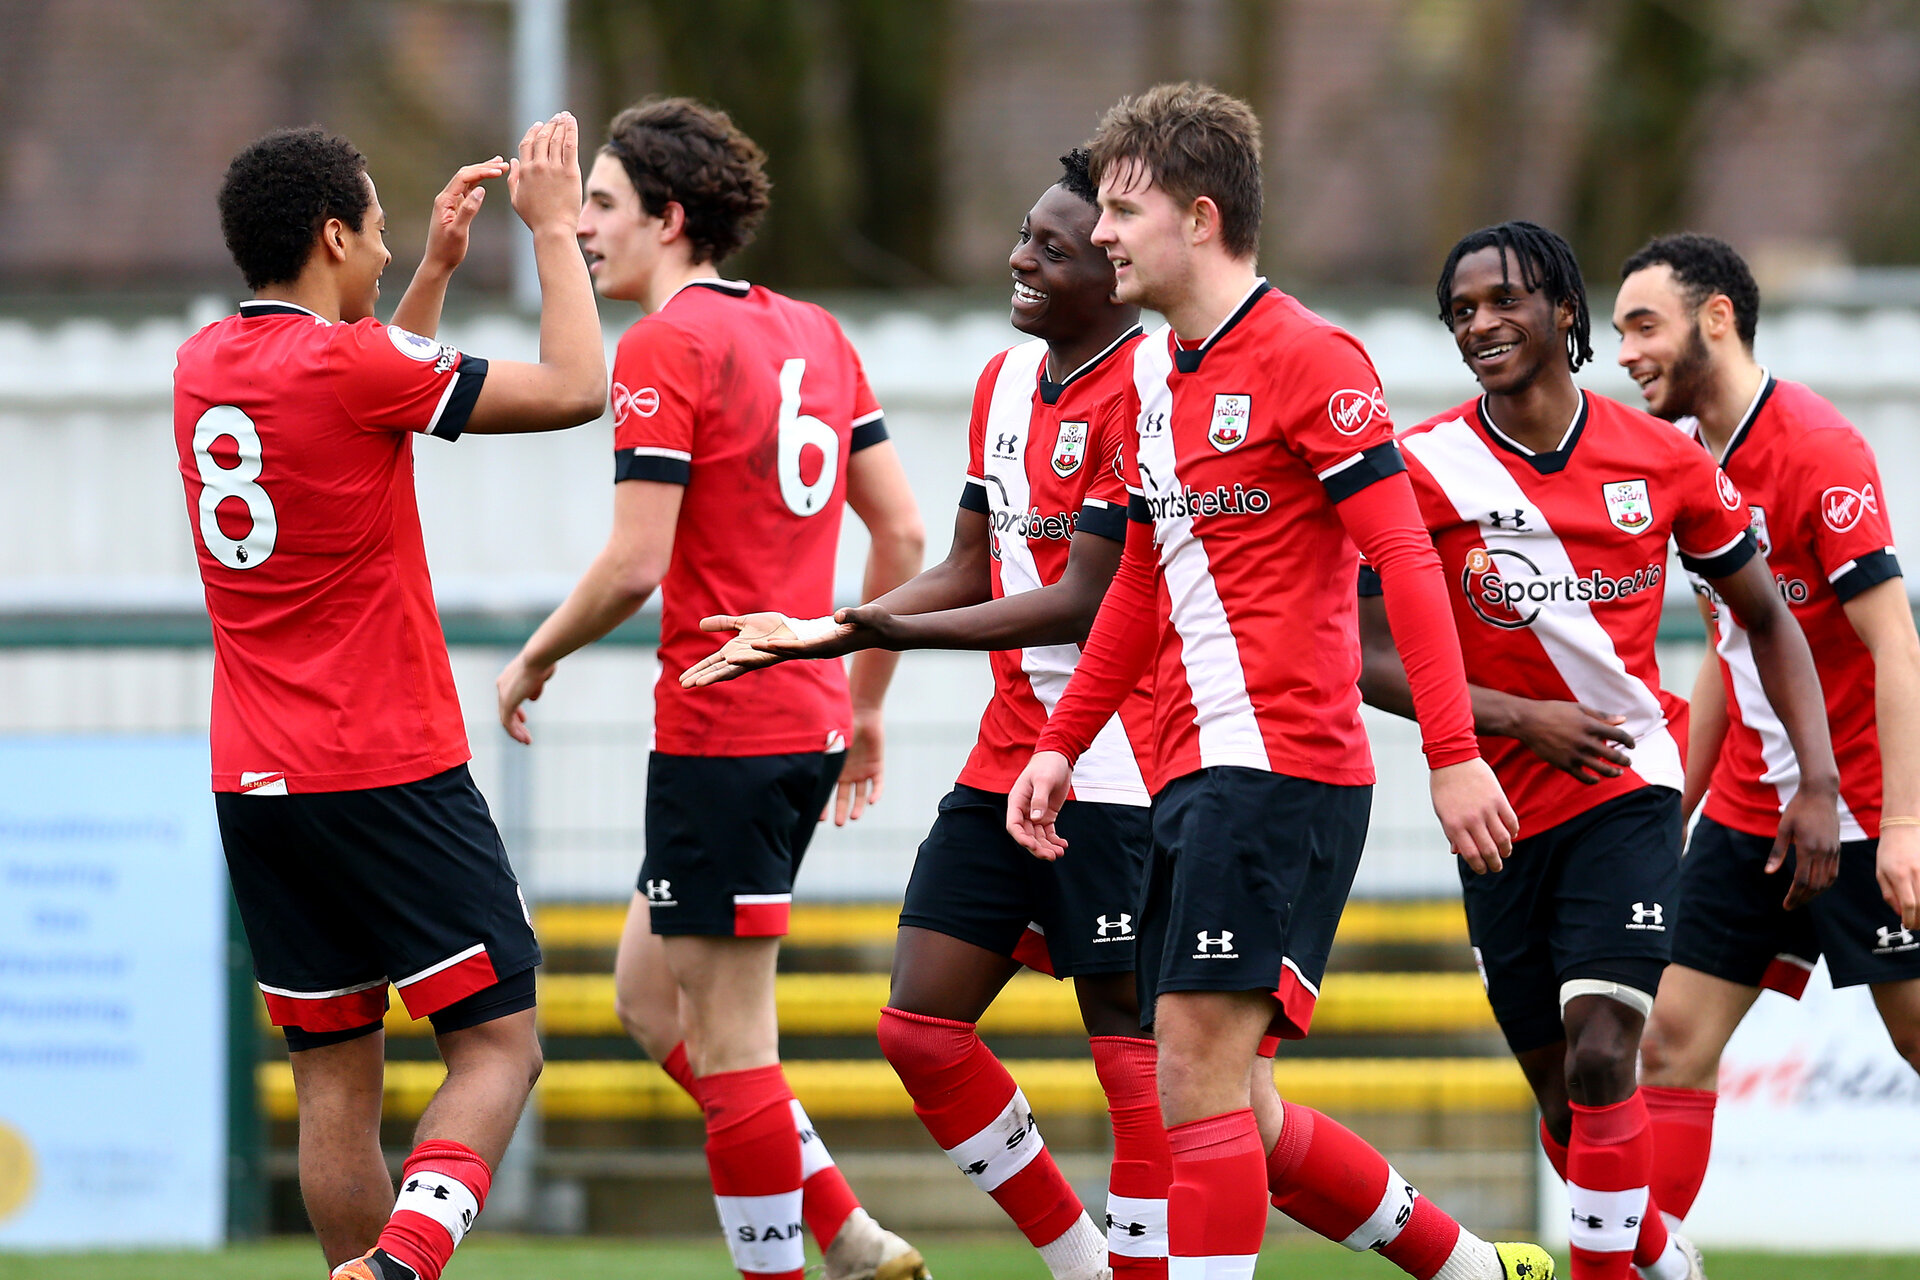 SOUTHAMPTON, ENGLAND - FEBRUARY 21: Kazeem Olaigbe celebrates opening the scoring with his team mates during Premier League 2 match between Southampton B Team and Derby County U23s at The Snows Stadium on February 21, 2021 in Southampton, England. (Photo by Isabelle Field/Southampton FC via Getty Images)